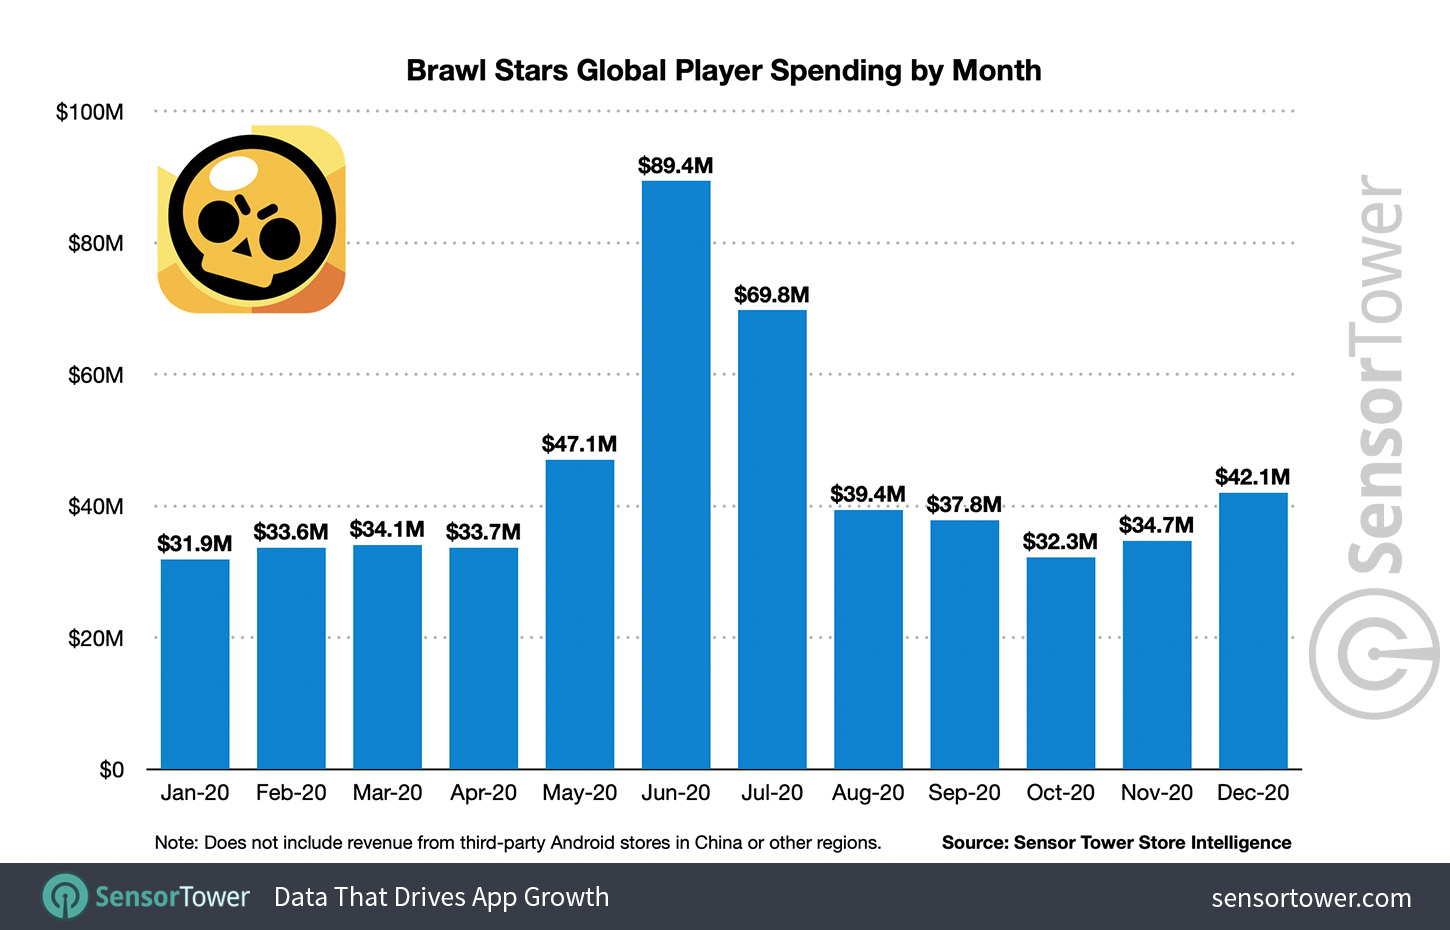 Brawl Stars Global Player Spending by Month